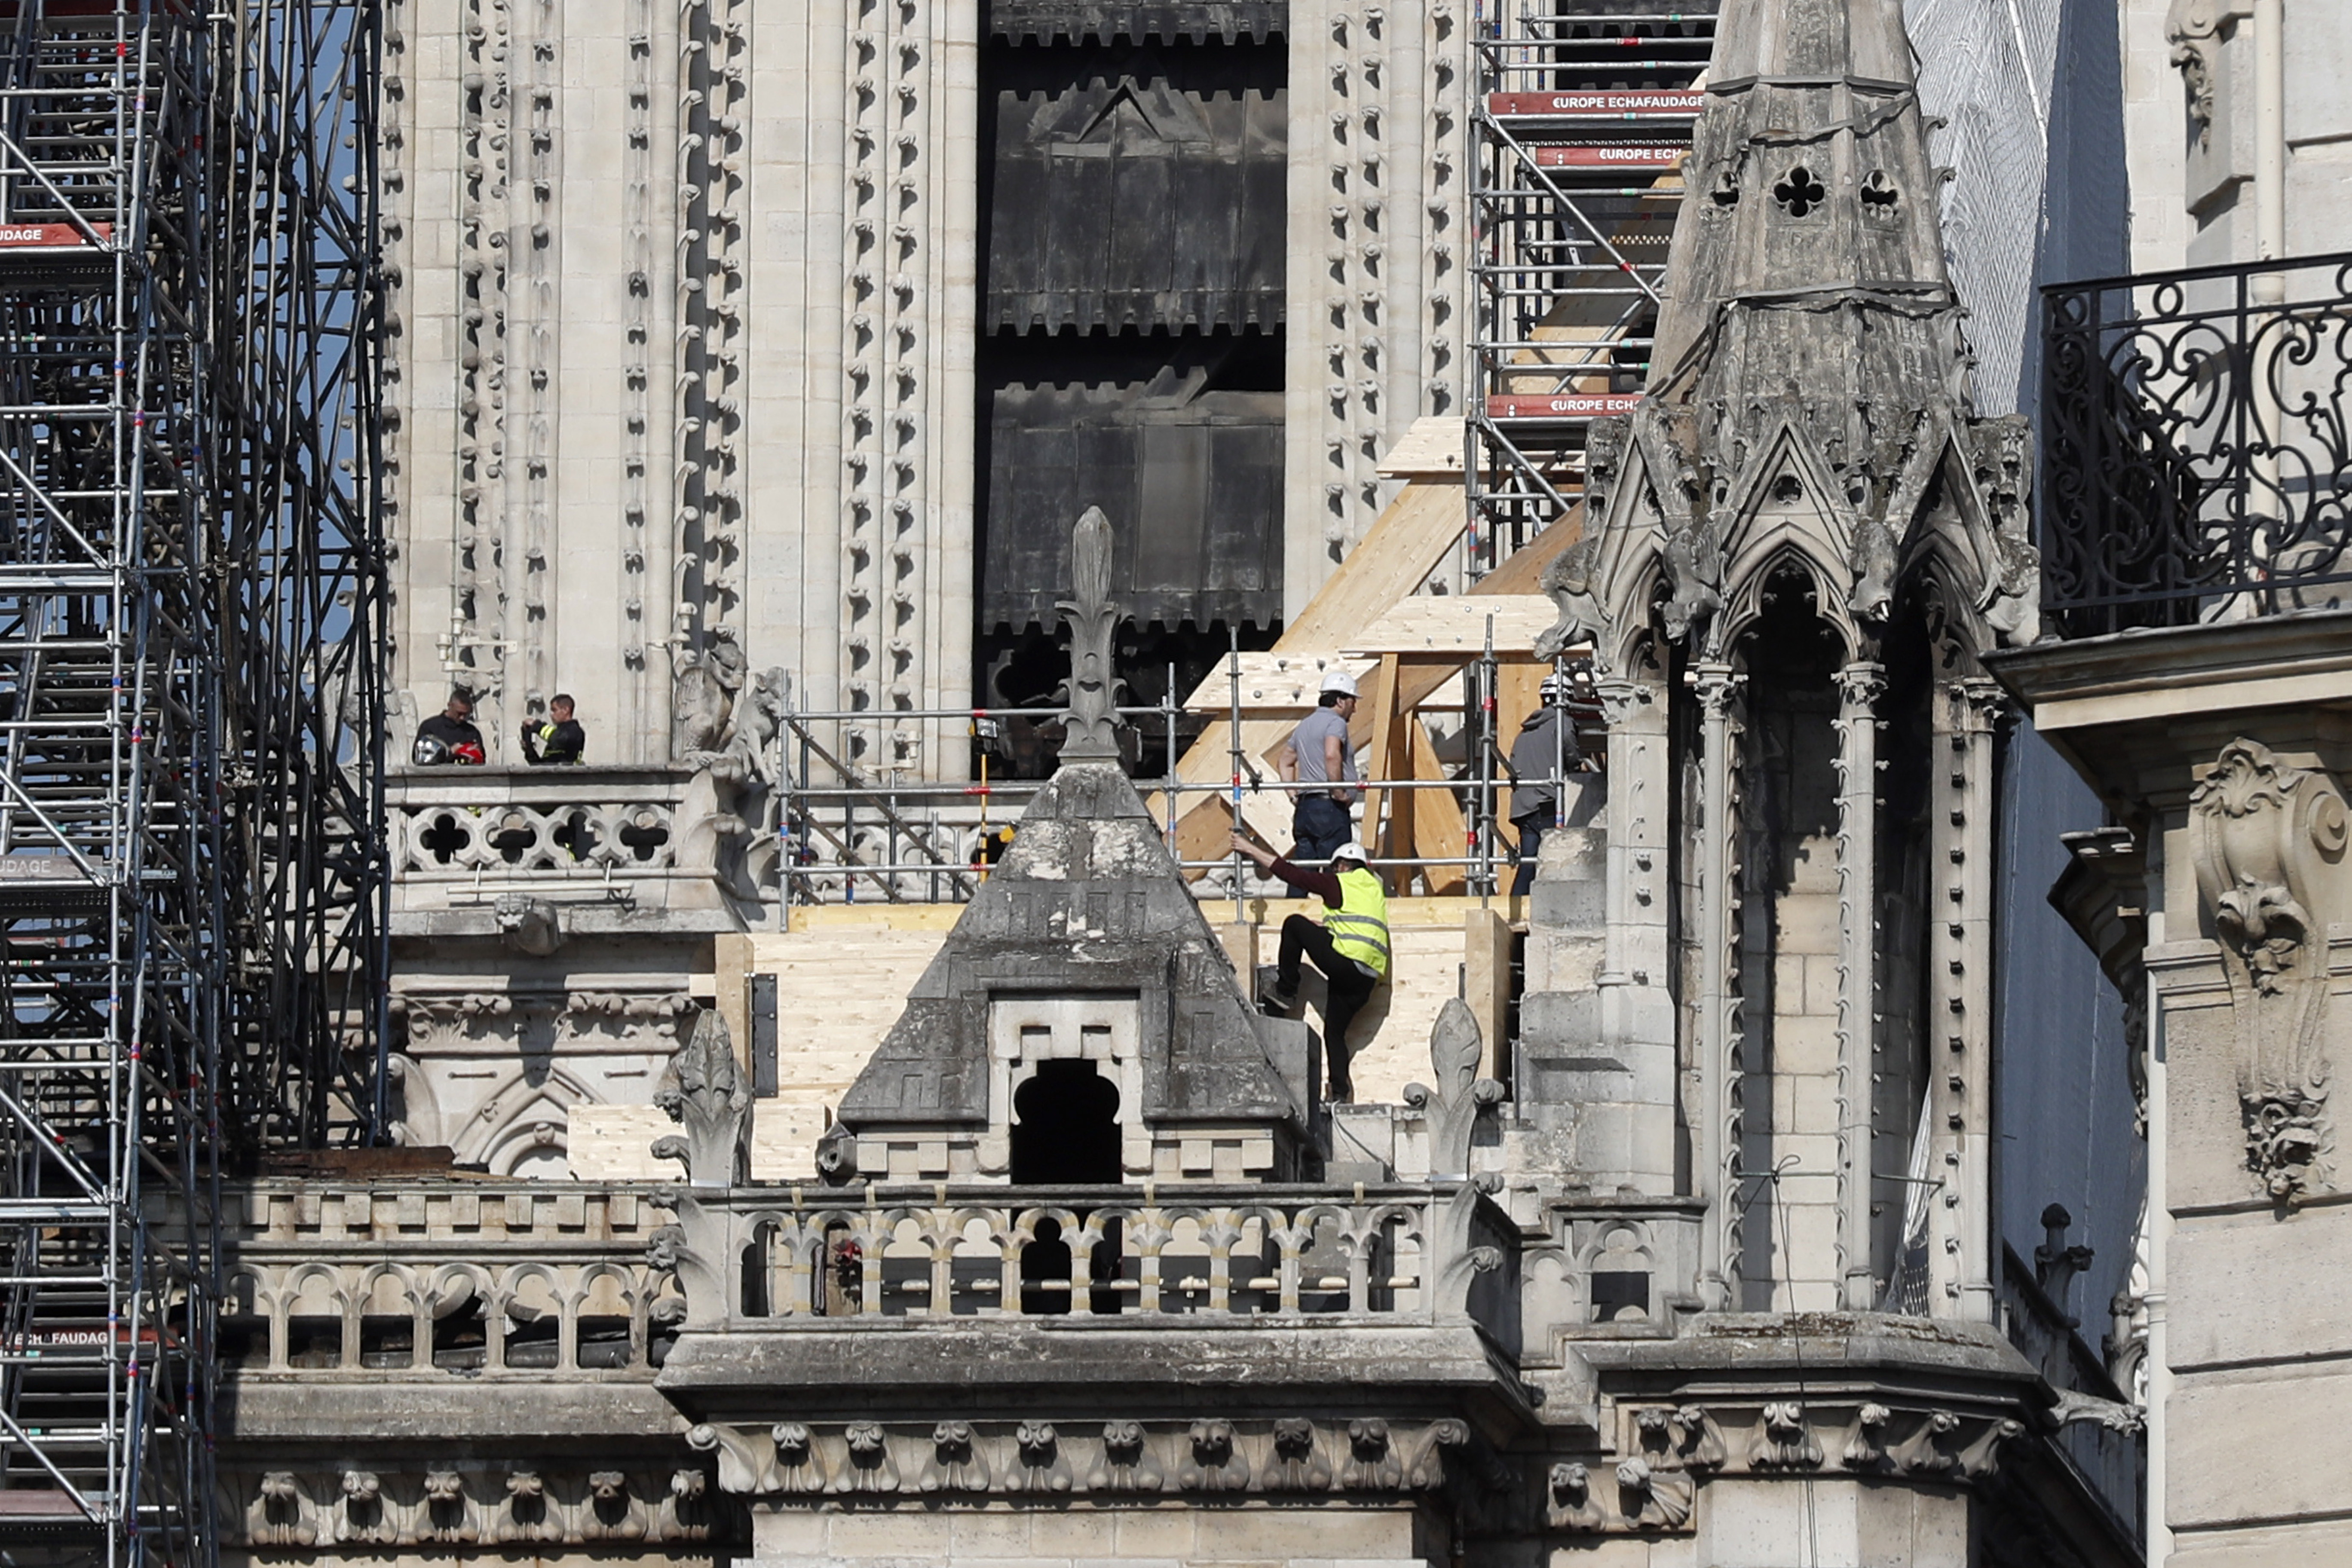 Workers stand by wooden planks supporting Notre Dame cathedral Friday, April 19, 2019 in Paris. Rebuilding Notre Dame, the 800-year-old Paris cathedral devastated by fire this week, will cost billions of dollars as architects, historians and artisans work to preserve the medieval landmark. (AP Photo/Thibault Camus)